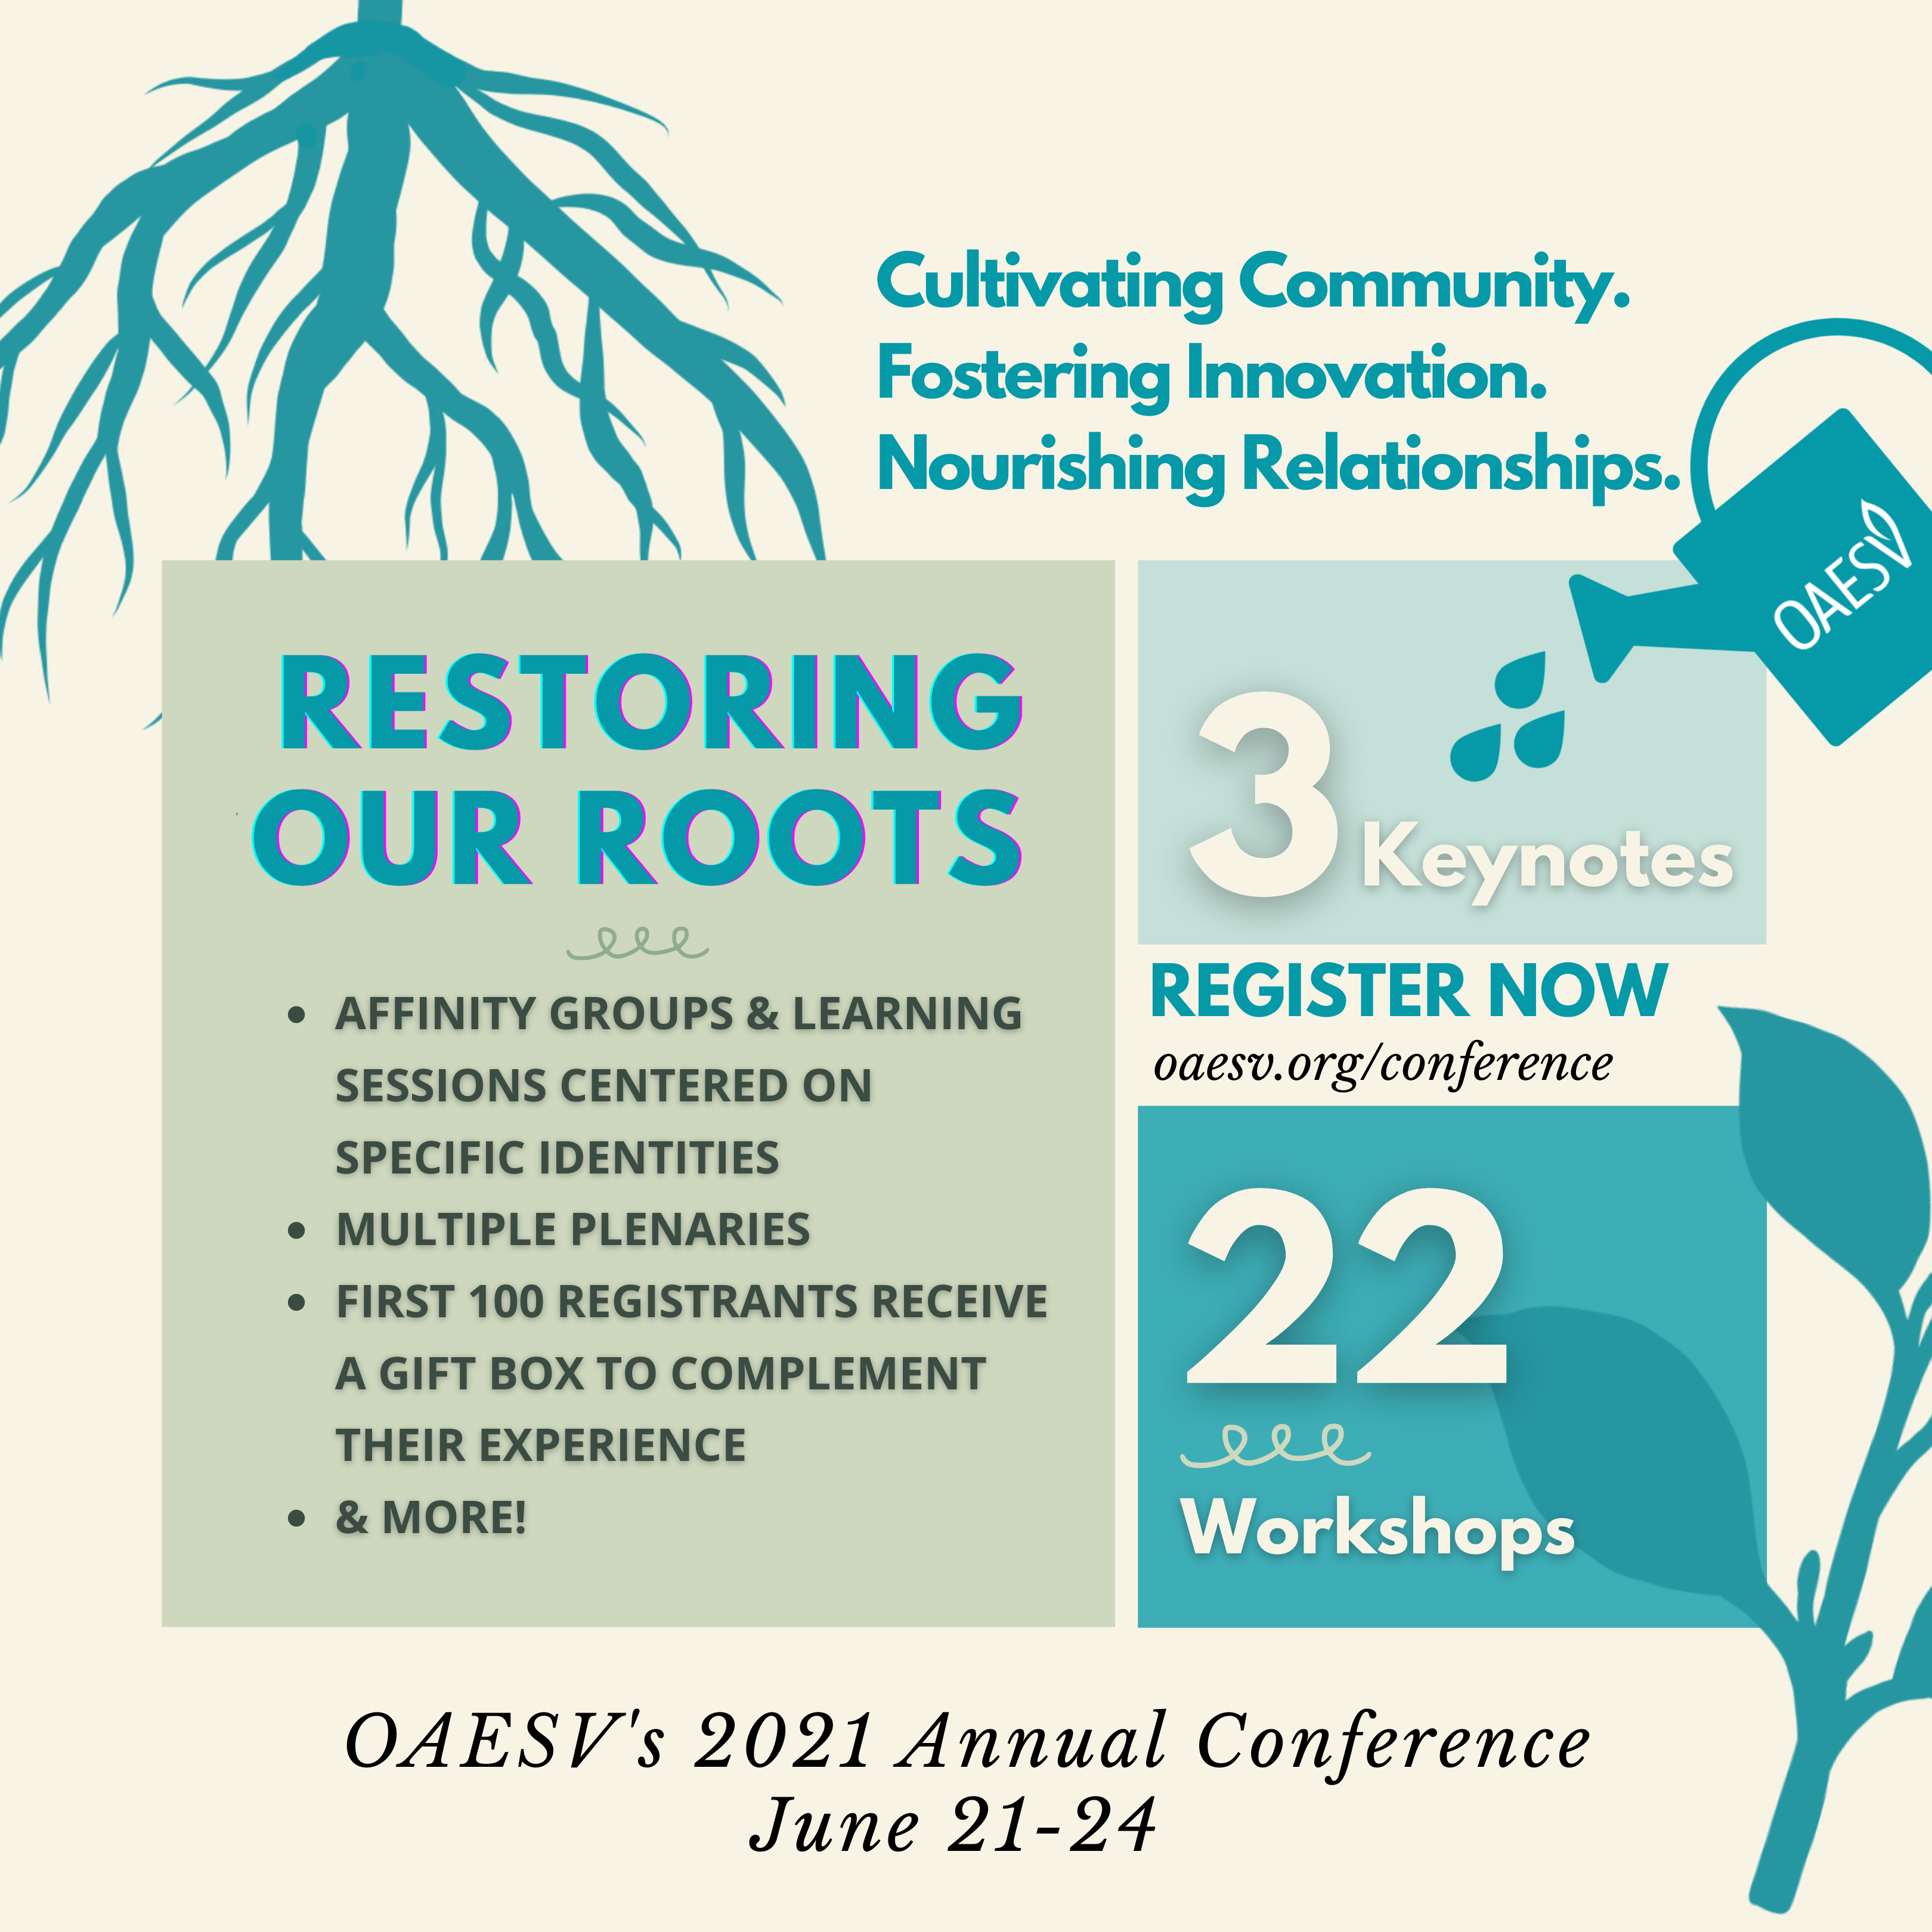 Registration Includes: 3 Keynotes, 22 Workshops, Affinity Groups & Learning Sessions Centered on Specific Identities Multiple plenaries First 100 registrants receive a gift box to complement their experience & more!